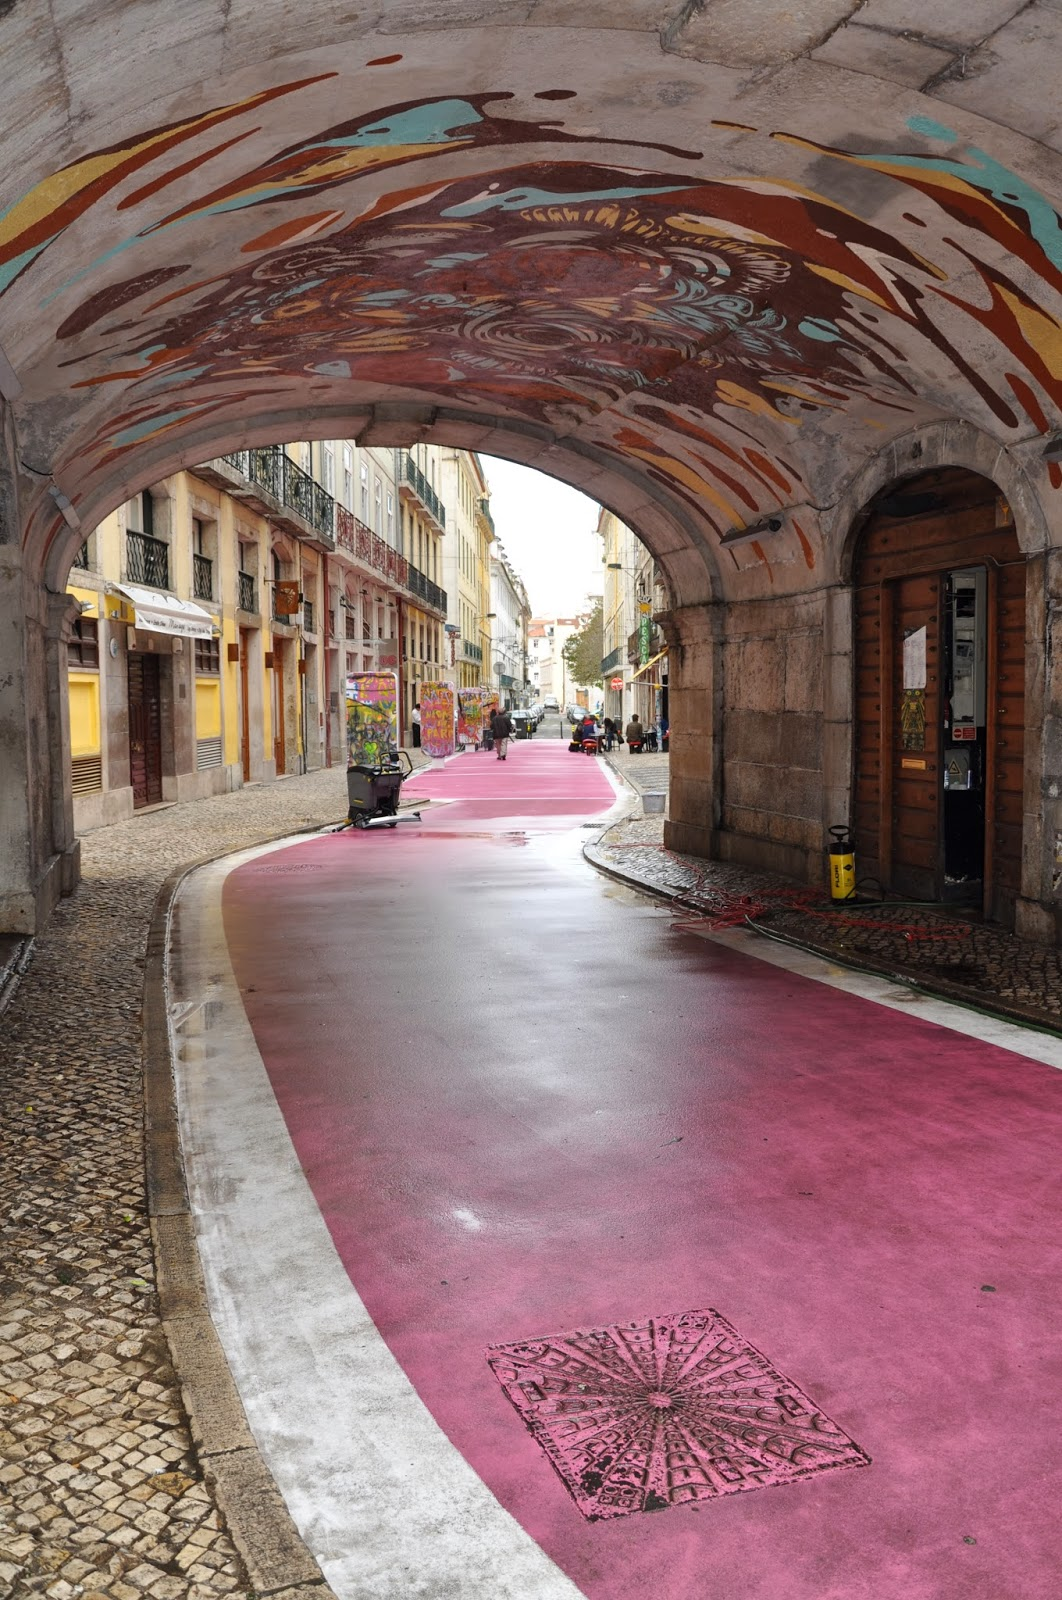 iolanda andrade the pink street in cais do sodr233 area